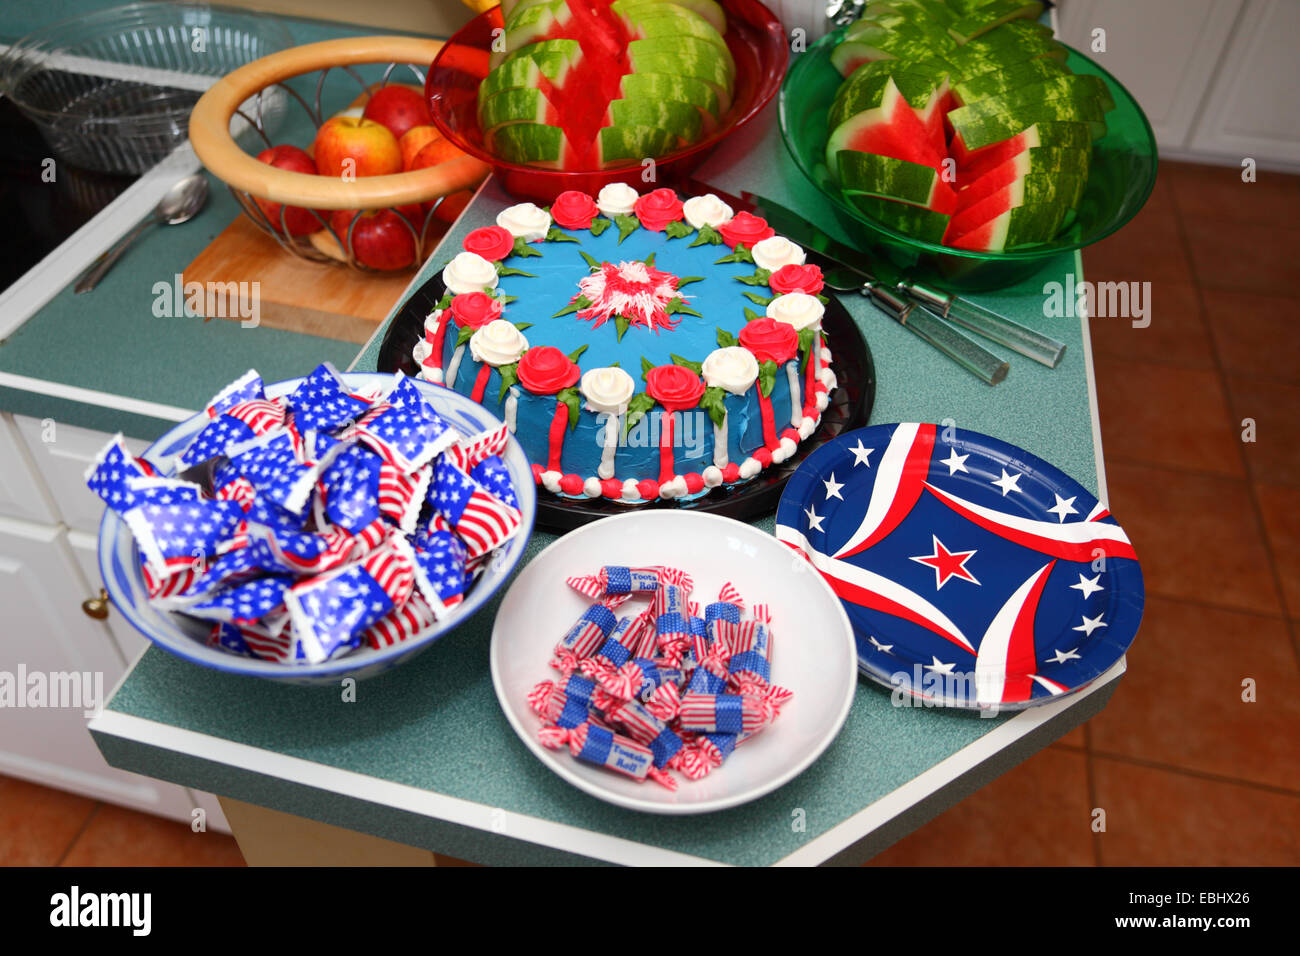 4th of july independence day cake and sweets in america flag stock